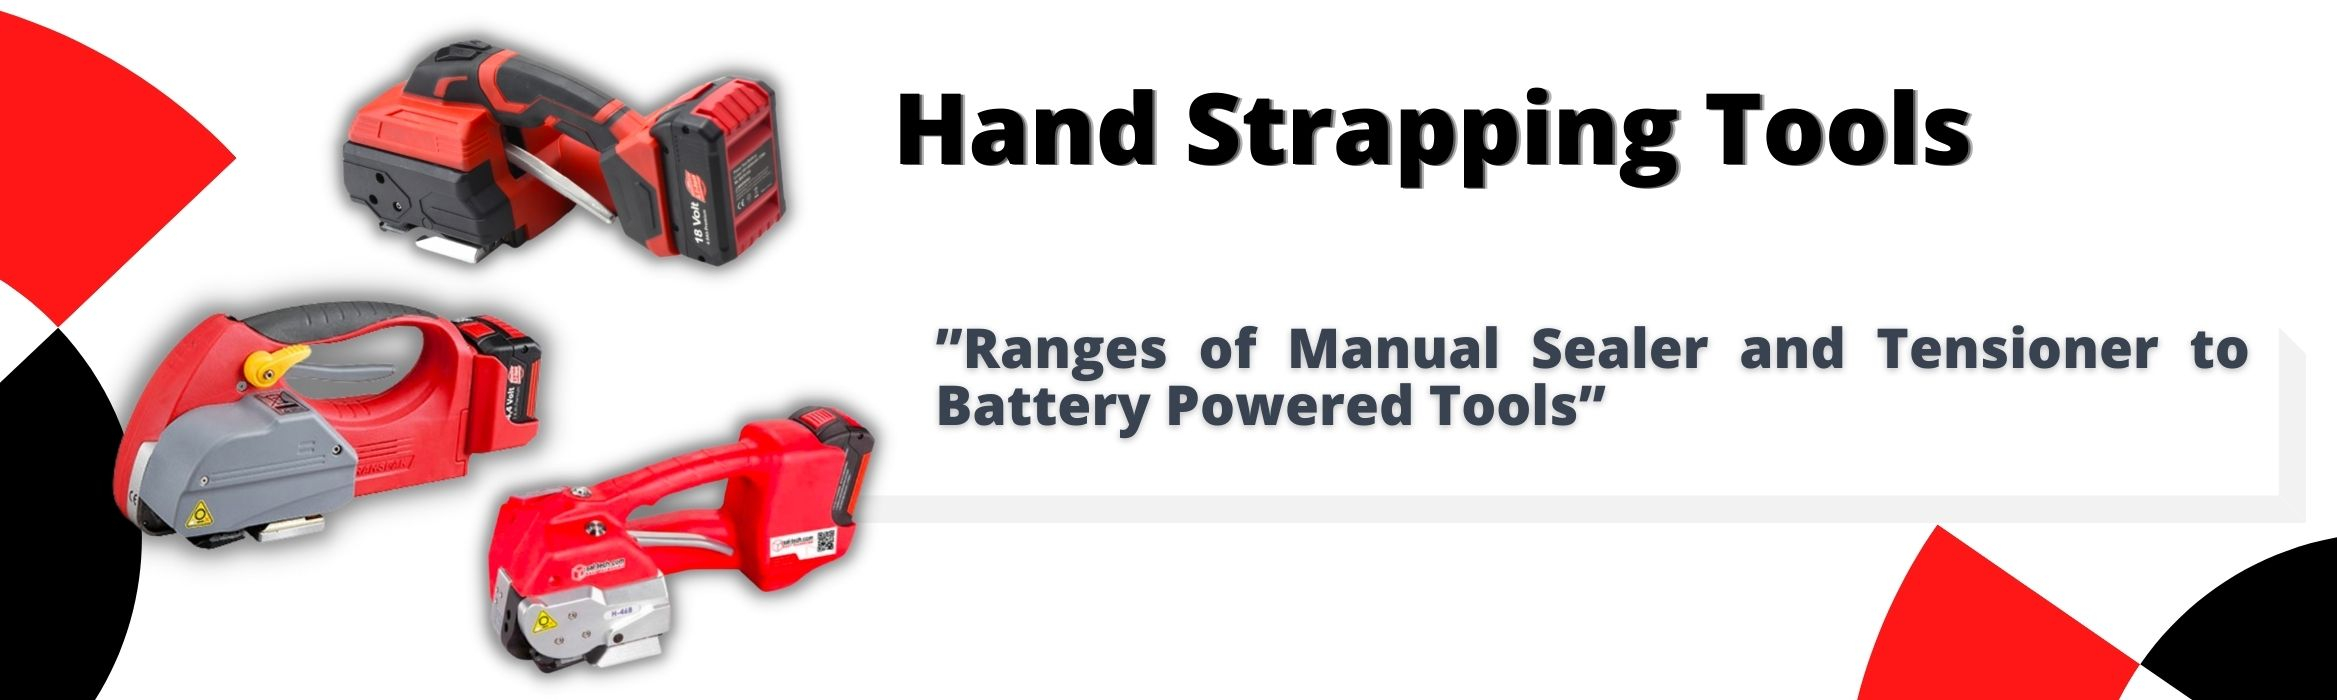 TRANSPAK H-46 KRONOS BATTERY POWERED STRAPPING TOOL